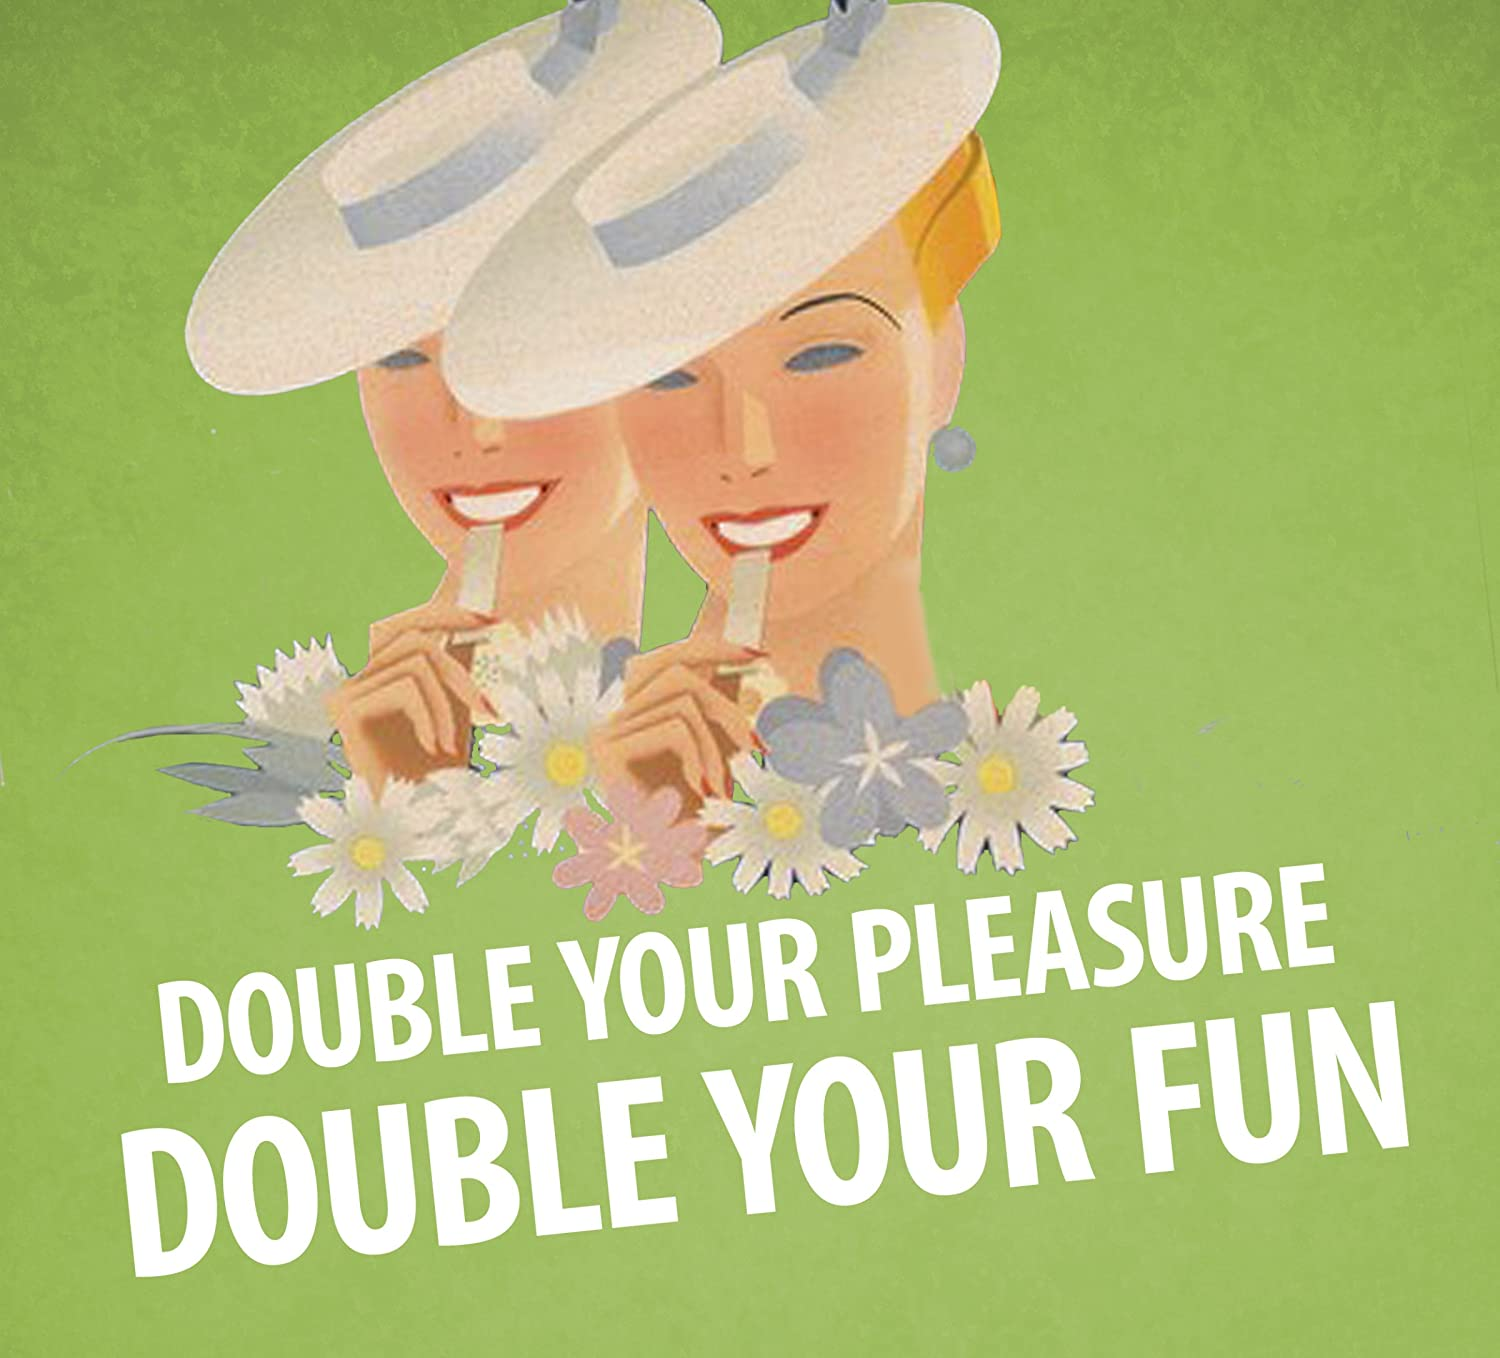 pleasure Doulbe your